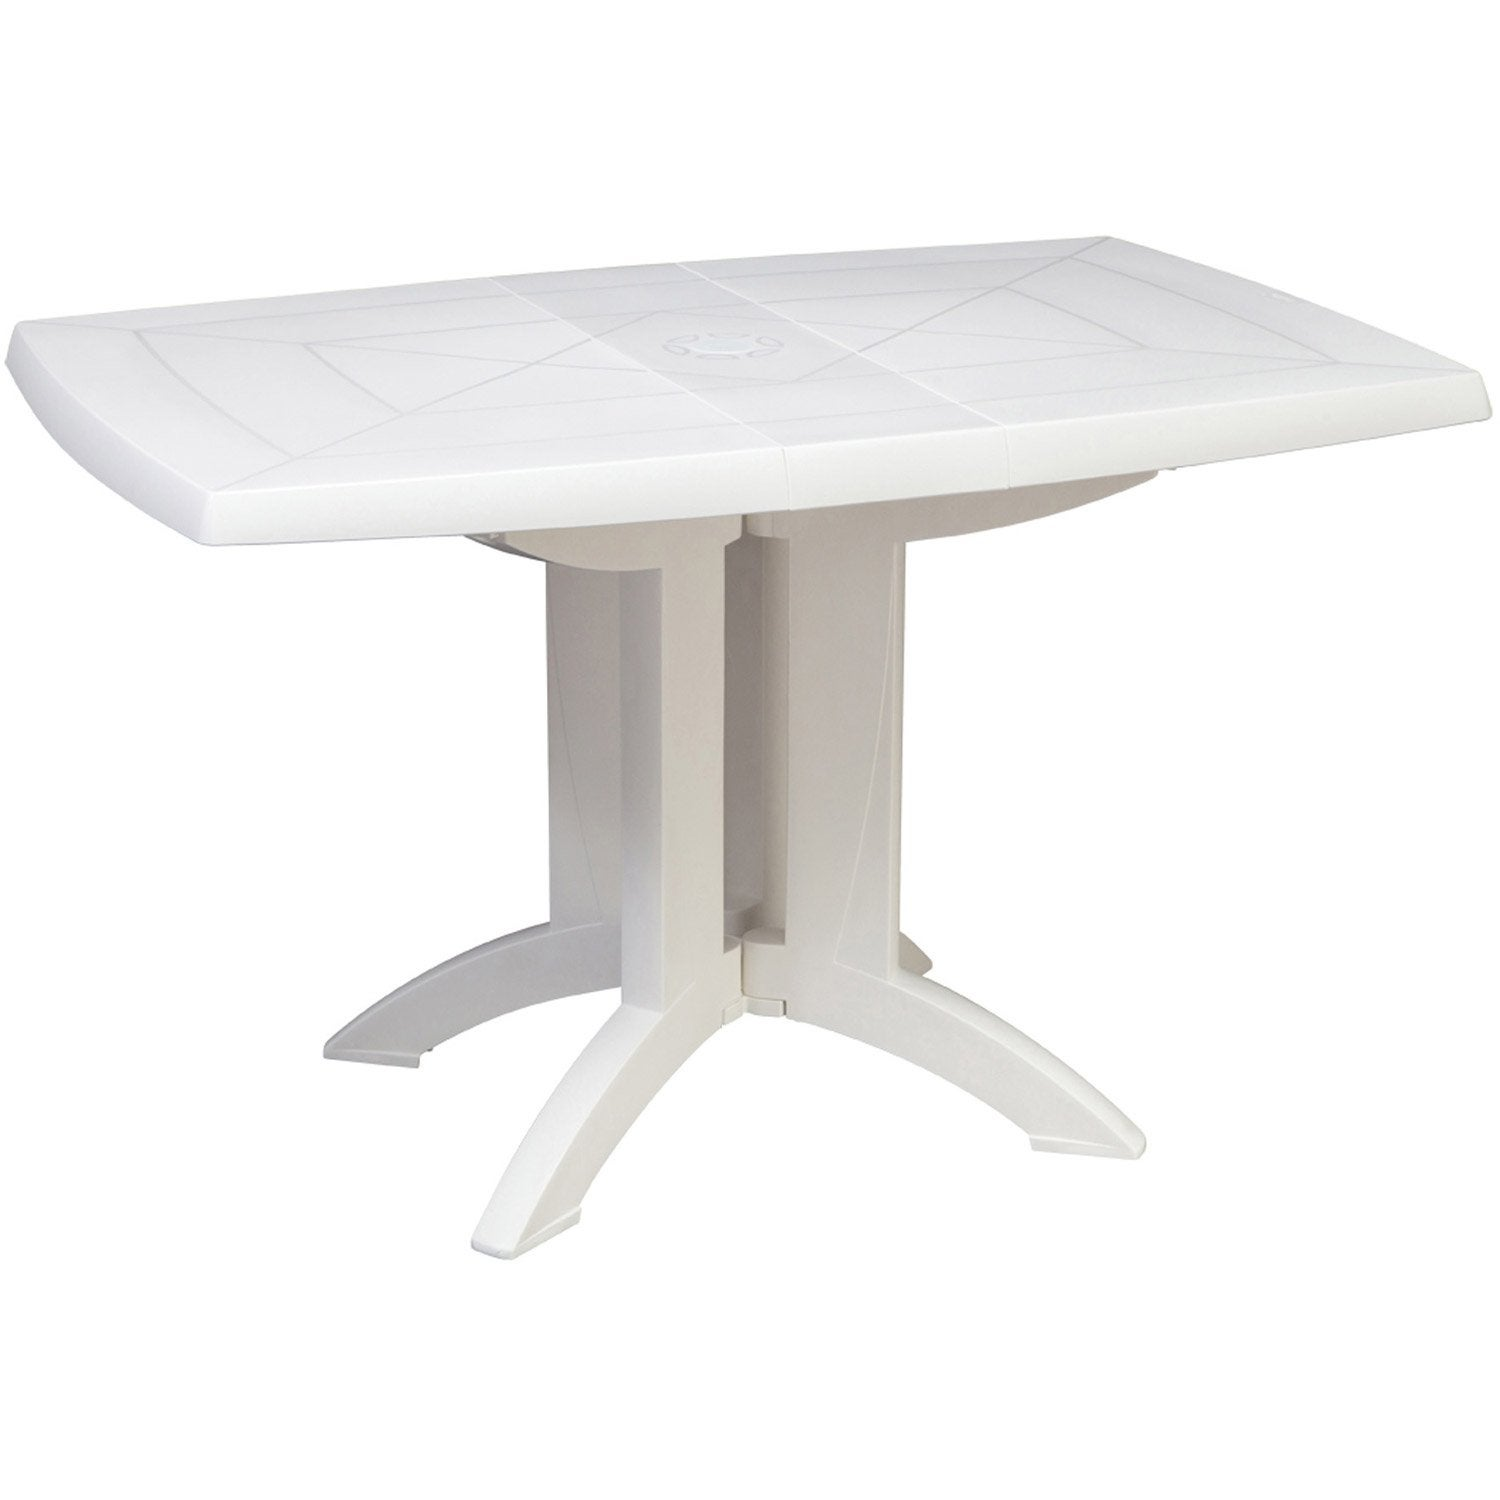 Table de jardin grosfillex v ga rectangulaire blanc 4 for Table a repasser largeur 52